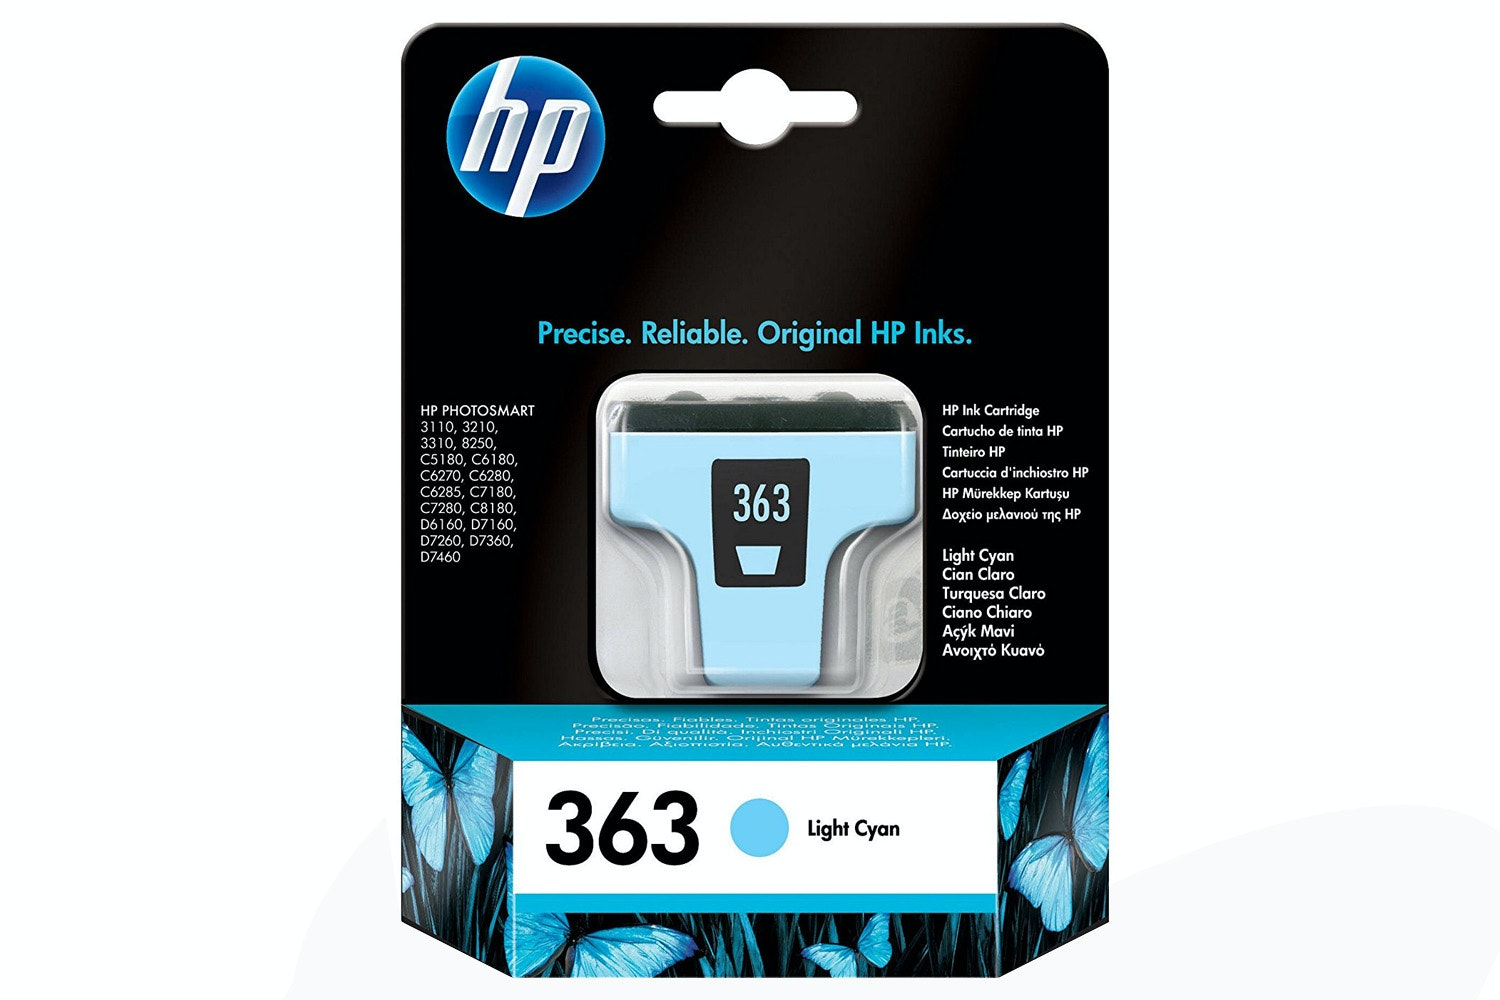 HP 363 Original Ink Cartridge | Light Cyan